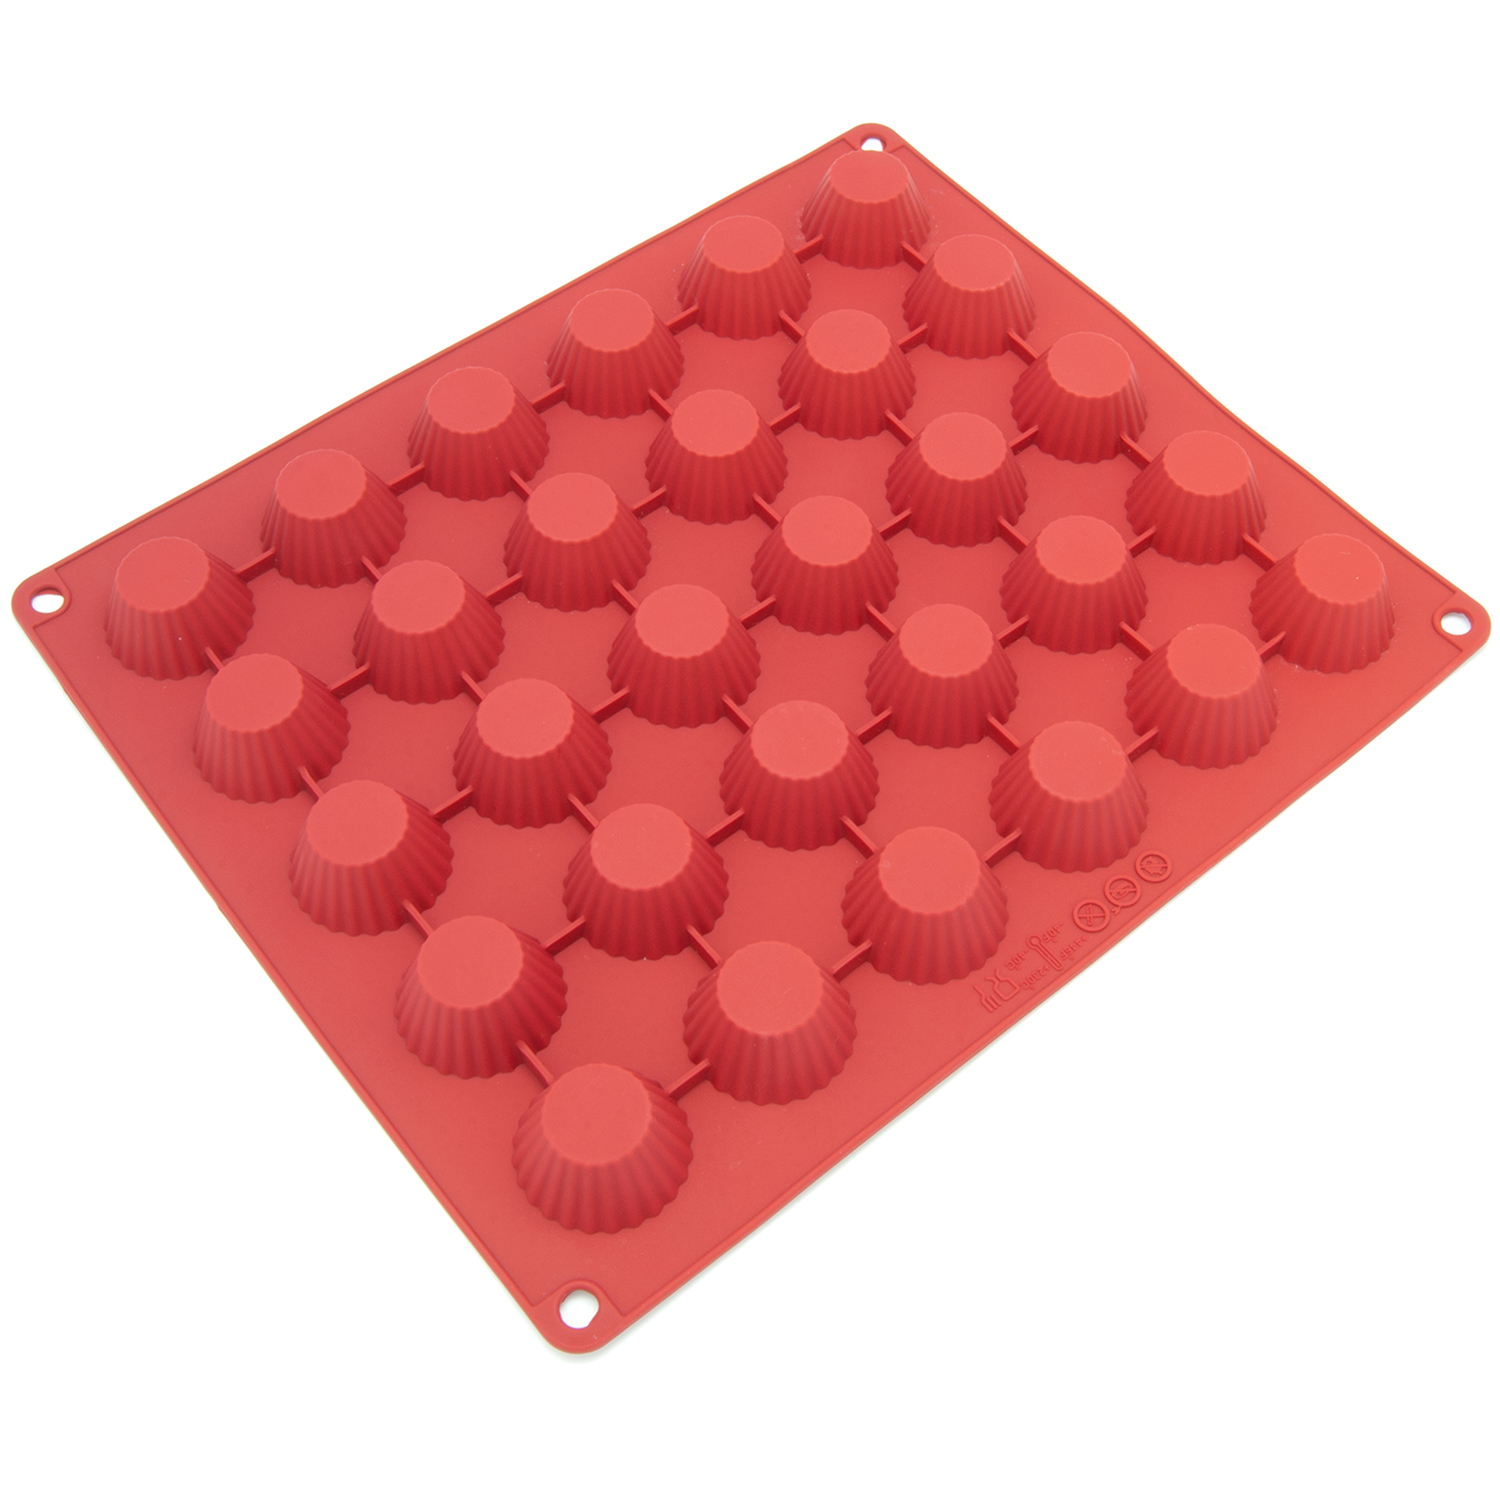 Freshware Silicone Mold, Chocolate Mold, Candy Mold, Ice Mold, Soap Mold for Chocolate, Candy and Gummy, Peanut Butter Cup, 30-Cavity 554e30d57aaaaa6d388b46c3